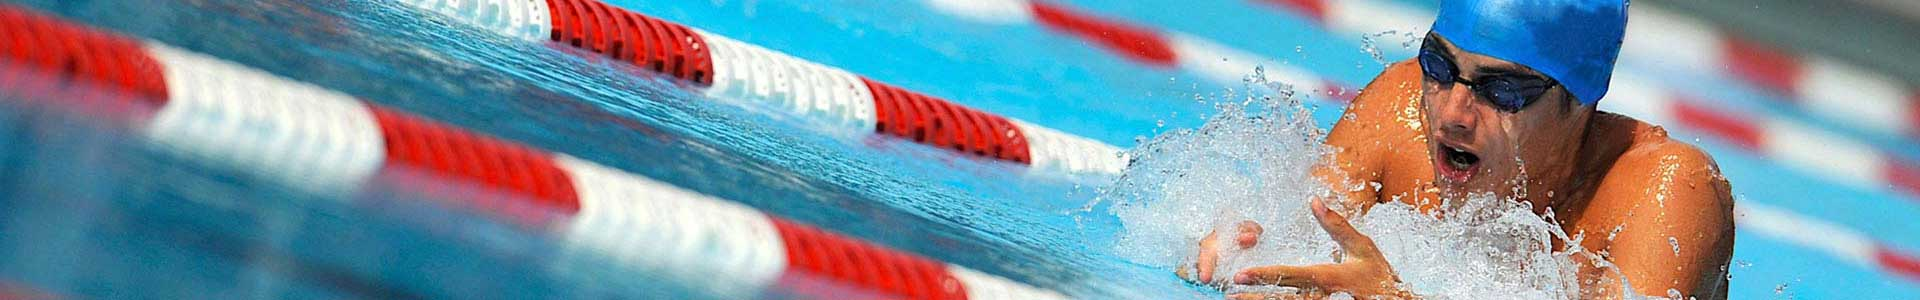 Swimming Lane Lines Page Banner